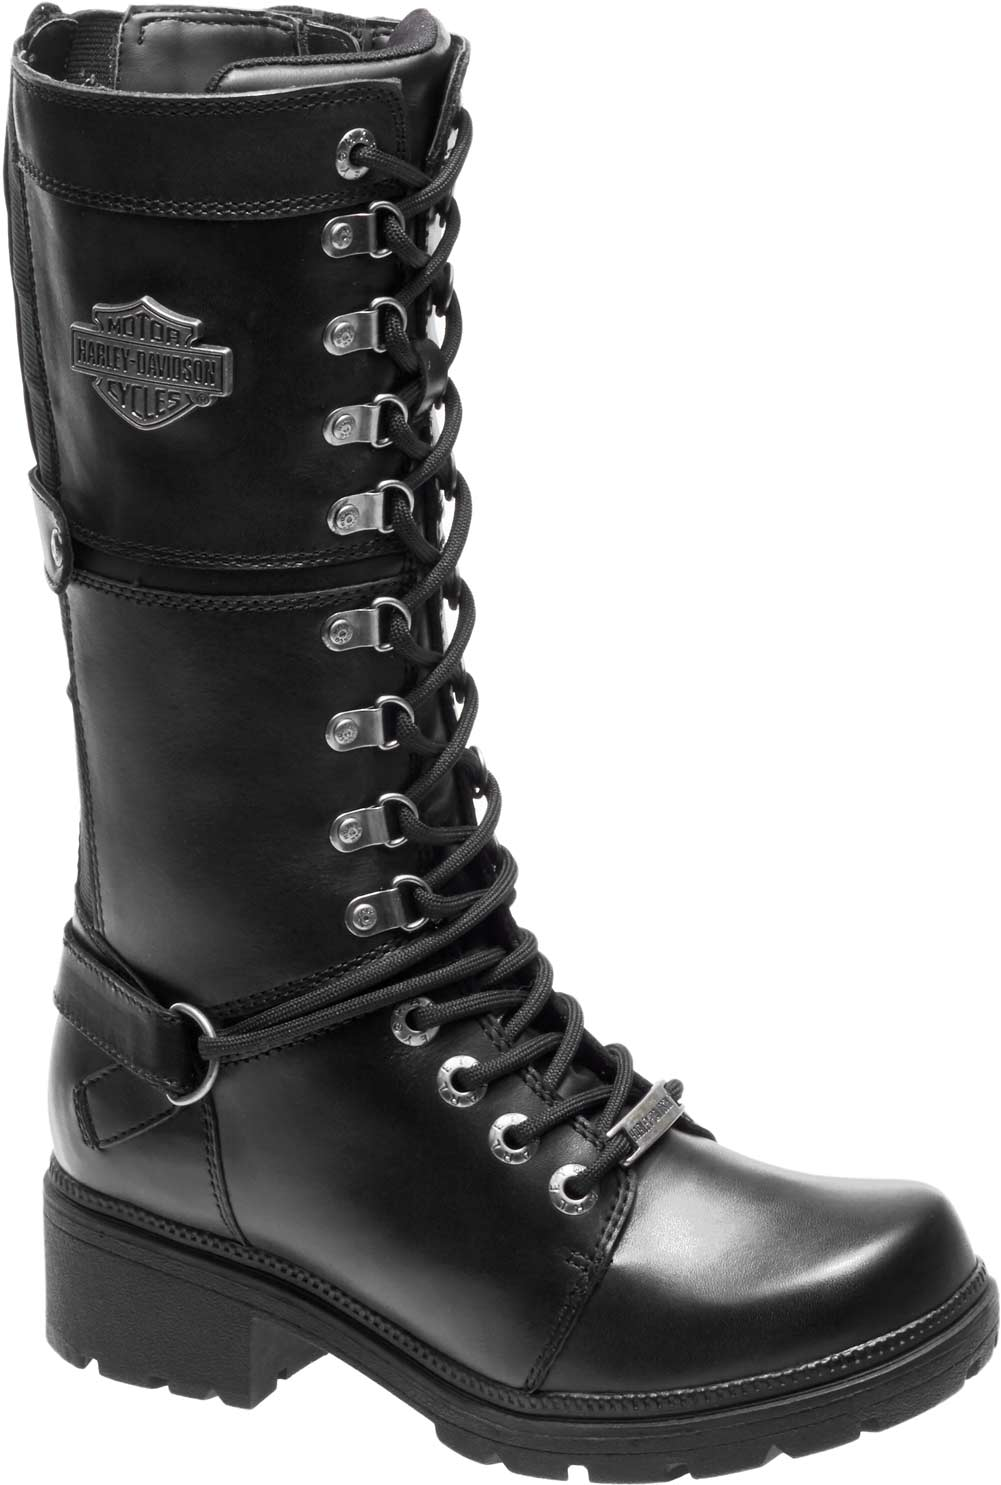 fe69c01d9b2 Details about Harley-Davidson Women's Harland 11-Inch Black Mid-Calf  Motorcycle Boots D83987